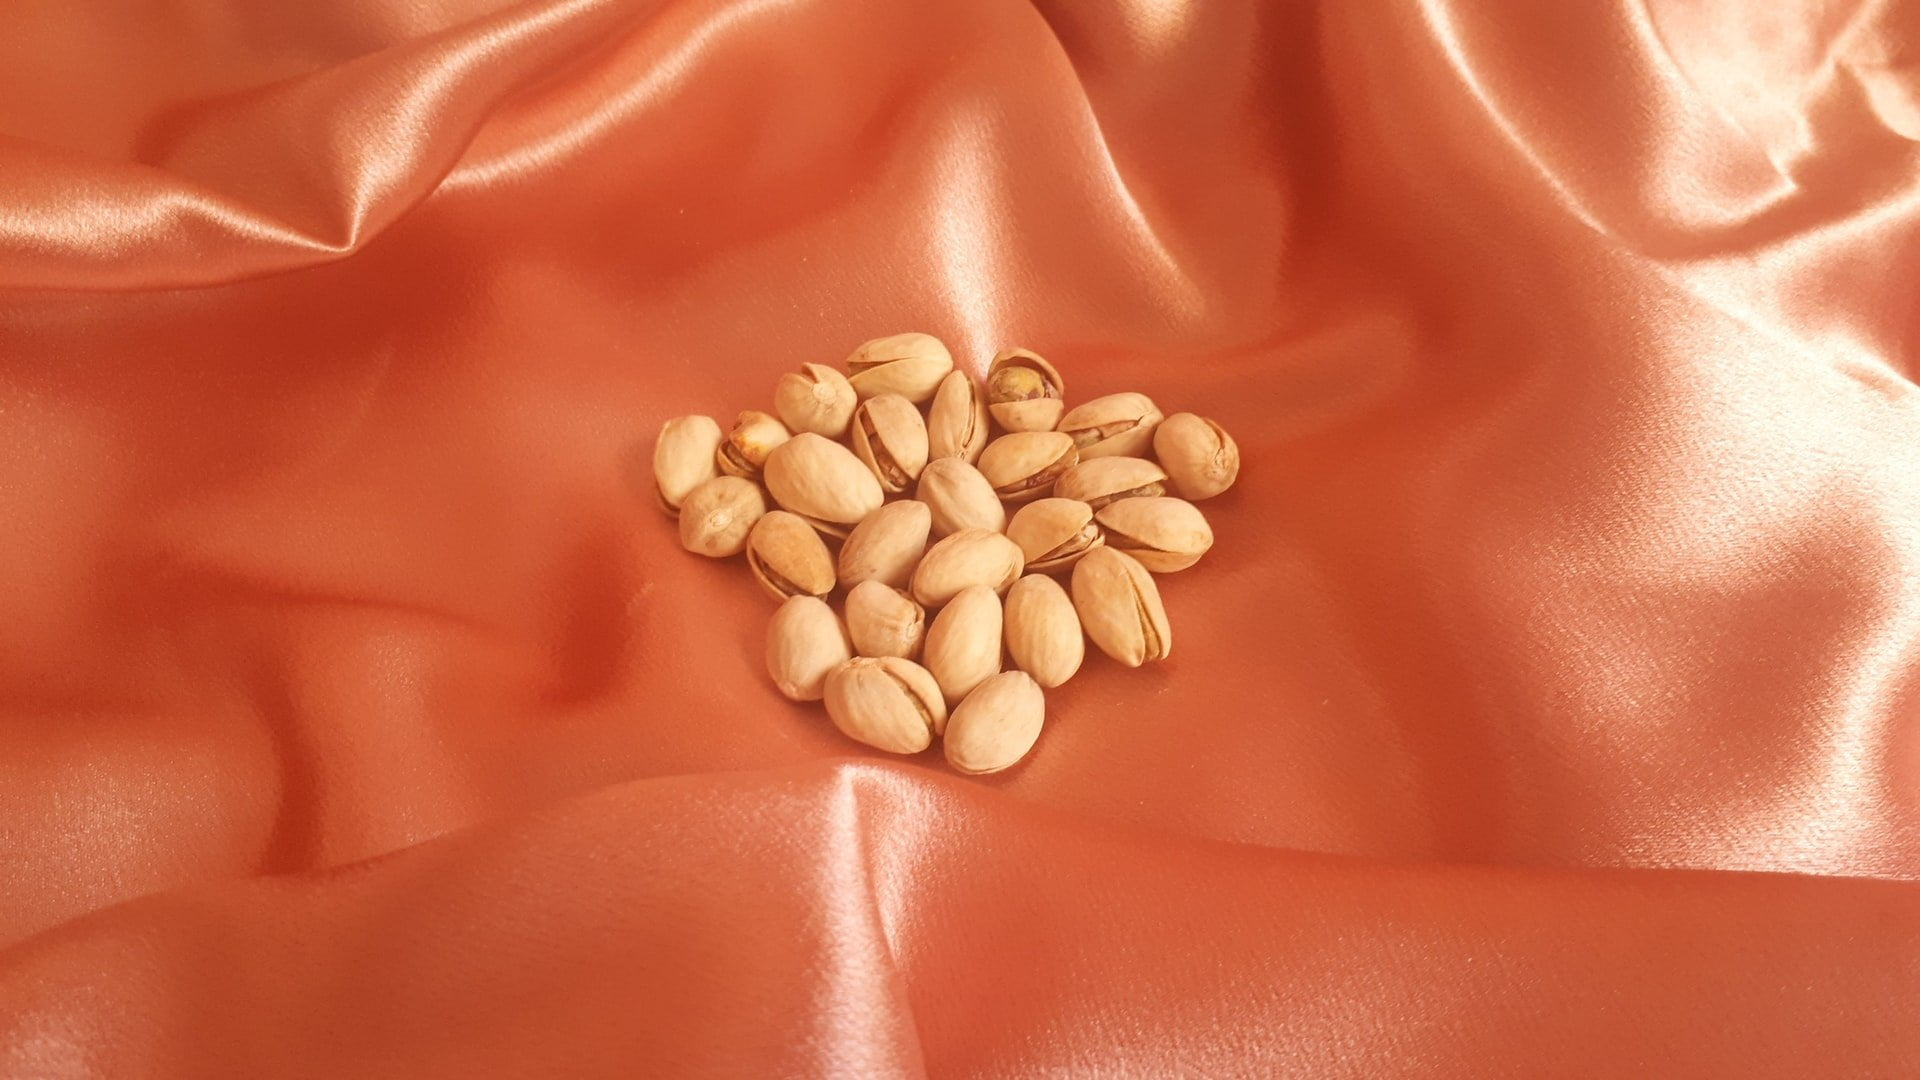 polyester sheet with pistachios on top